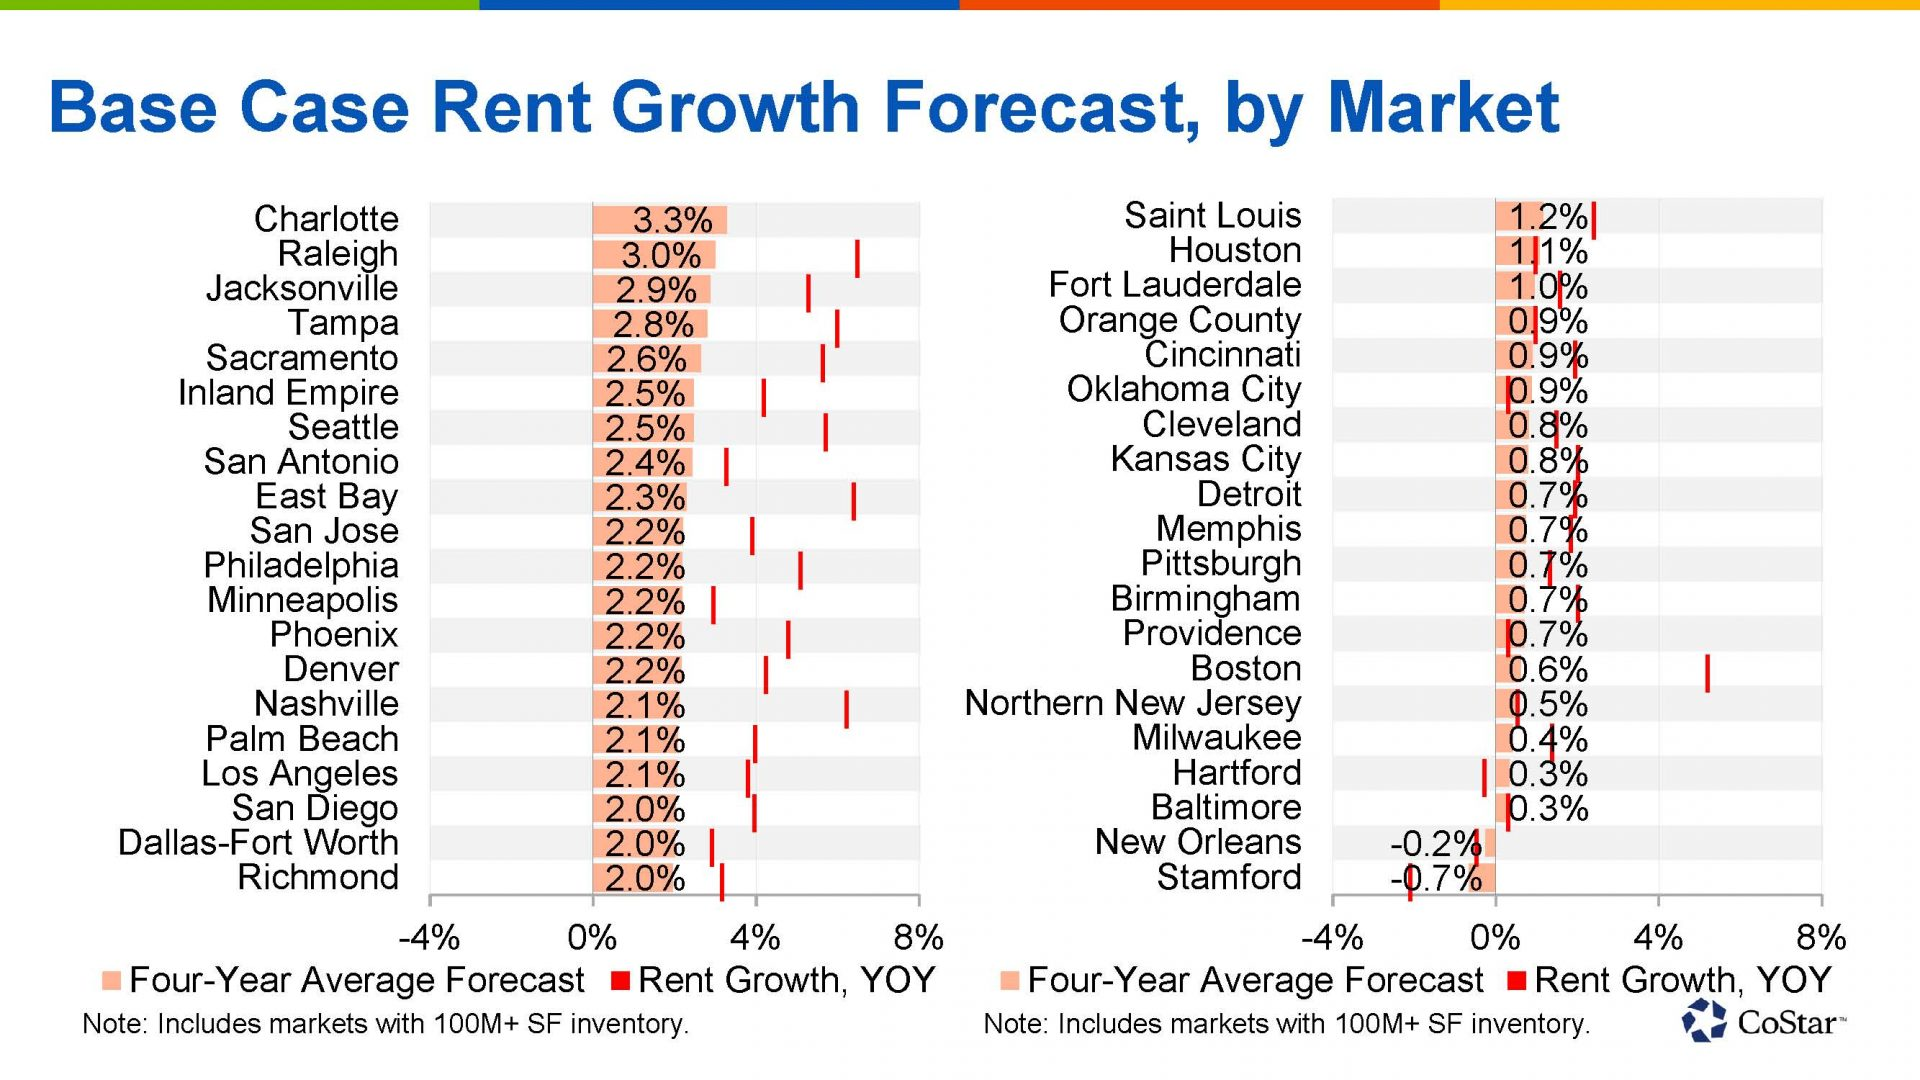 base case rent growth forecast by market